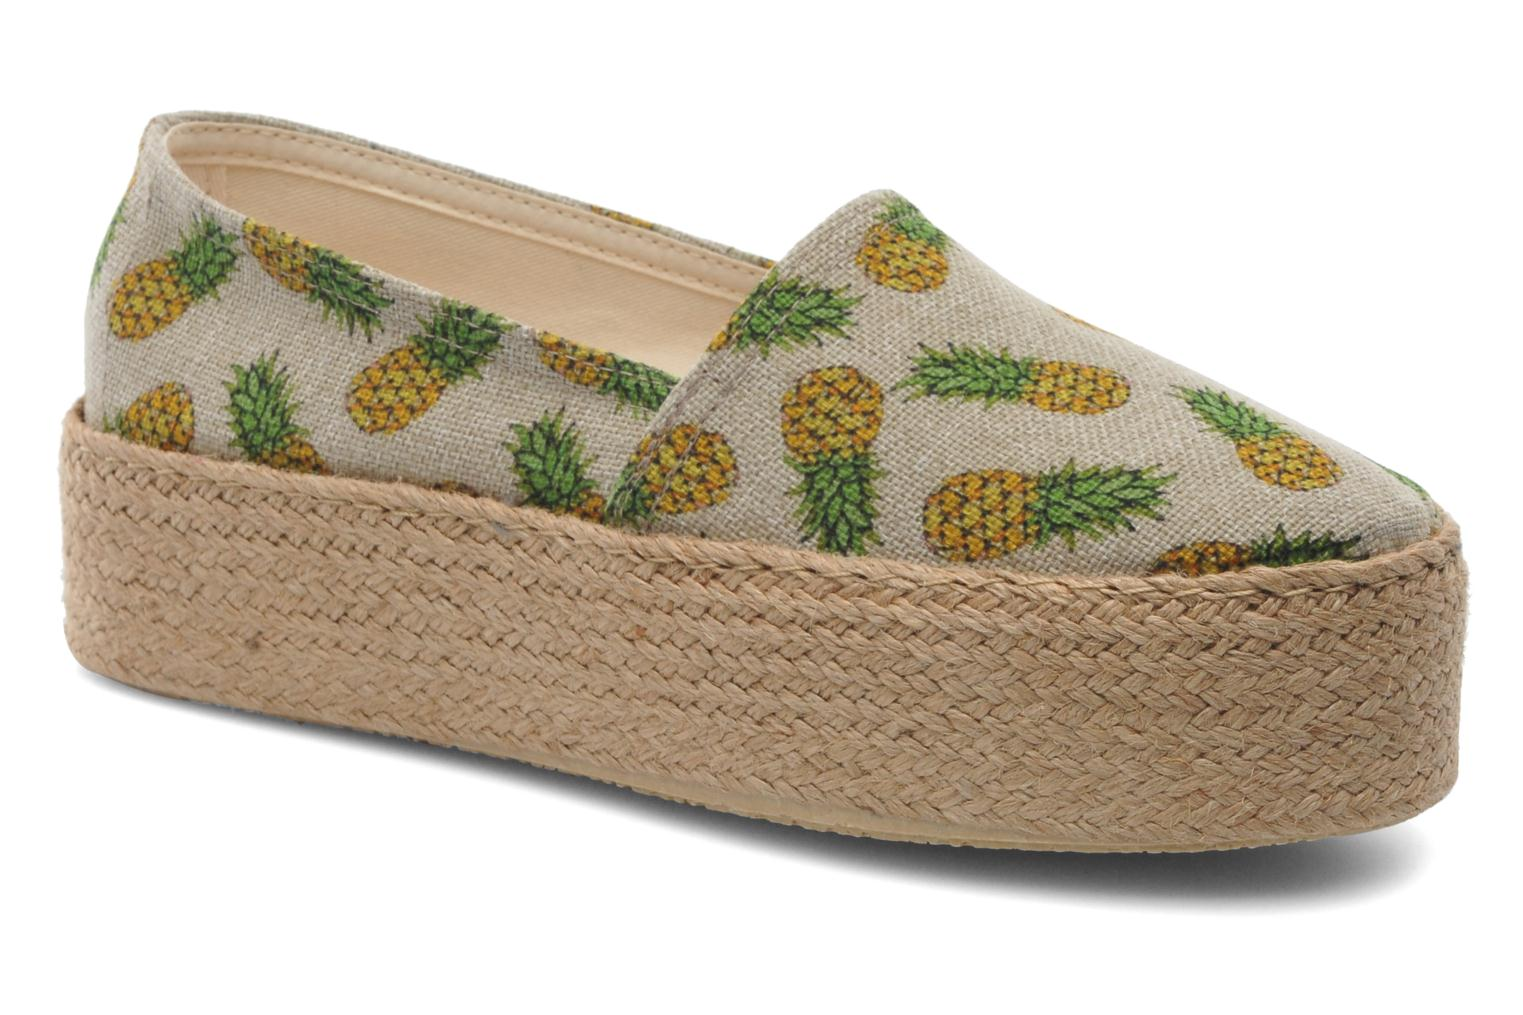 Marques Chaussure femme Ippon Vintage femme Nami beach ananas